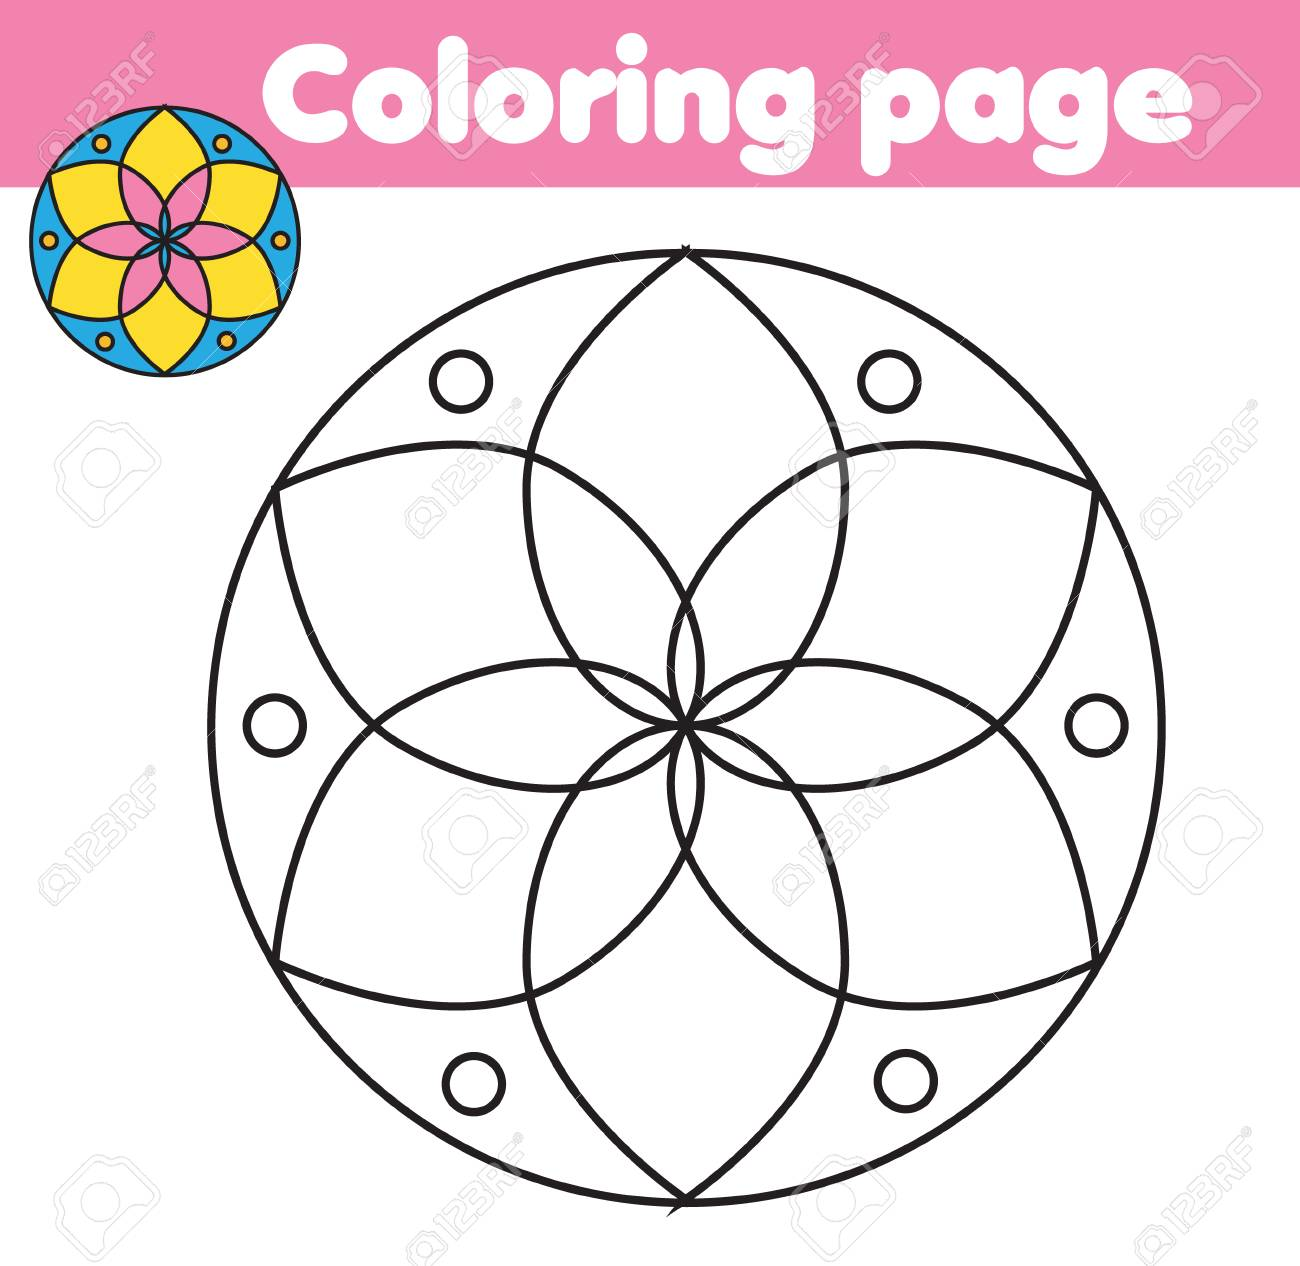 Coloring Page With Abstract Flower Shape Color The Picture Educational Children Game Drawing